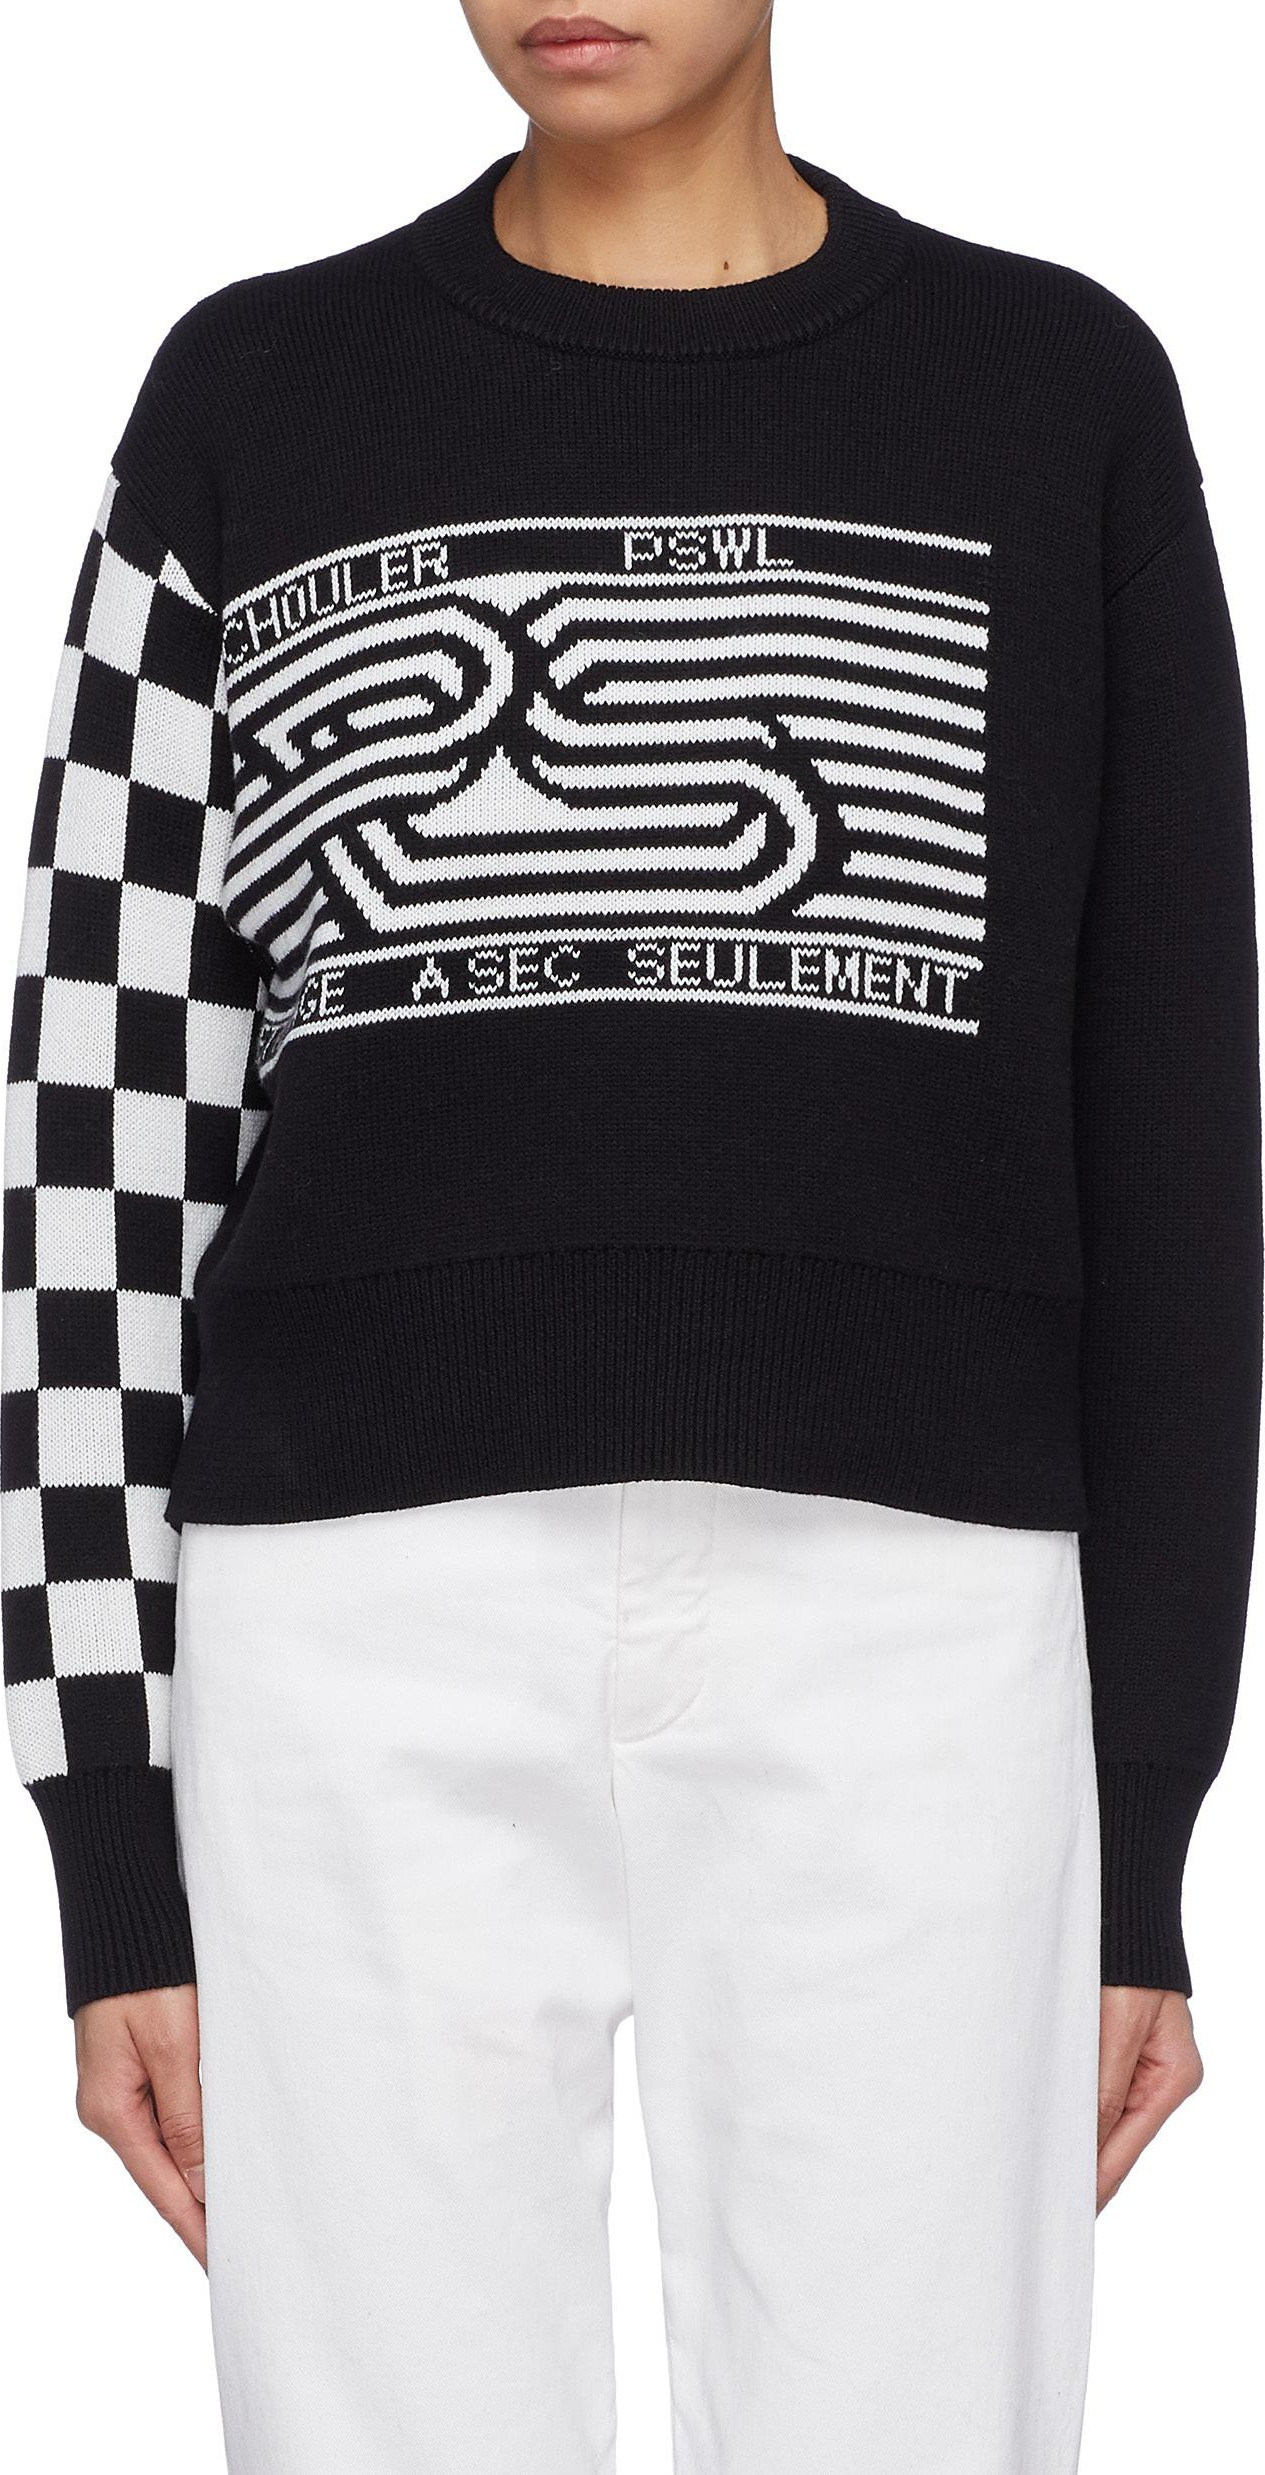 78aeec18042 proenza-schouler-pswl-checkerboard-sleeve-graphic-jacquard-cropped-sweater.jpg